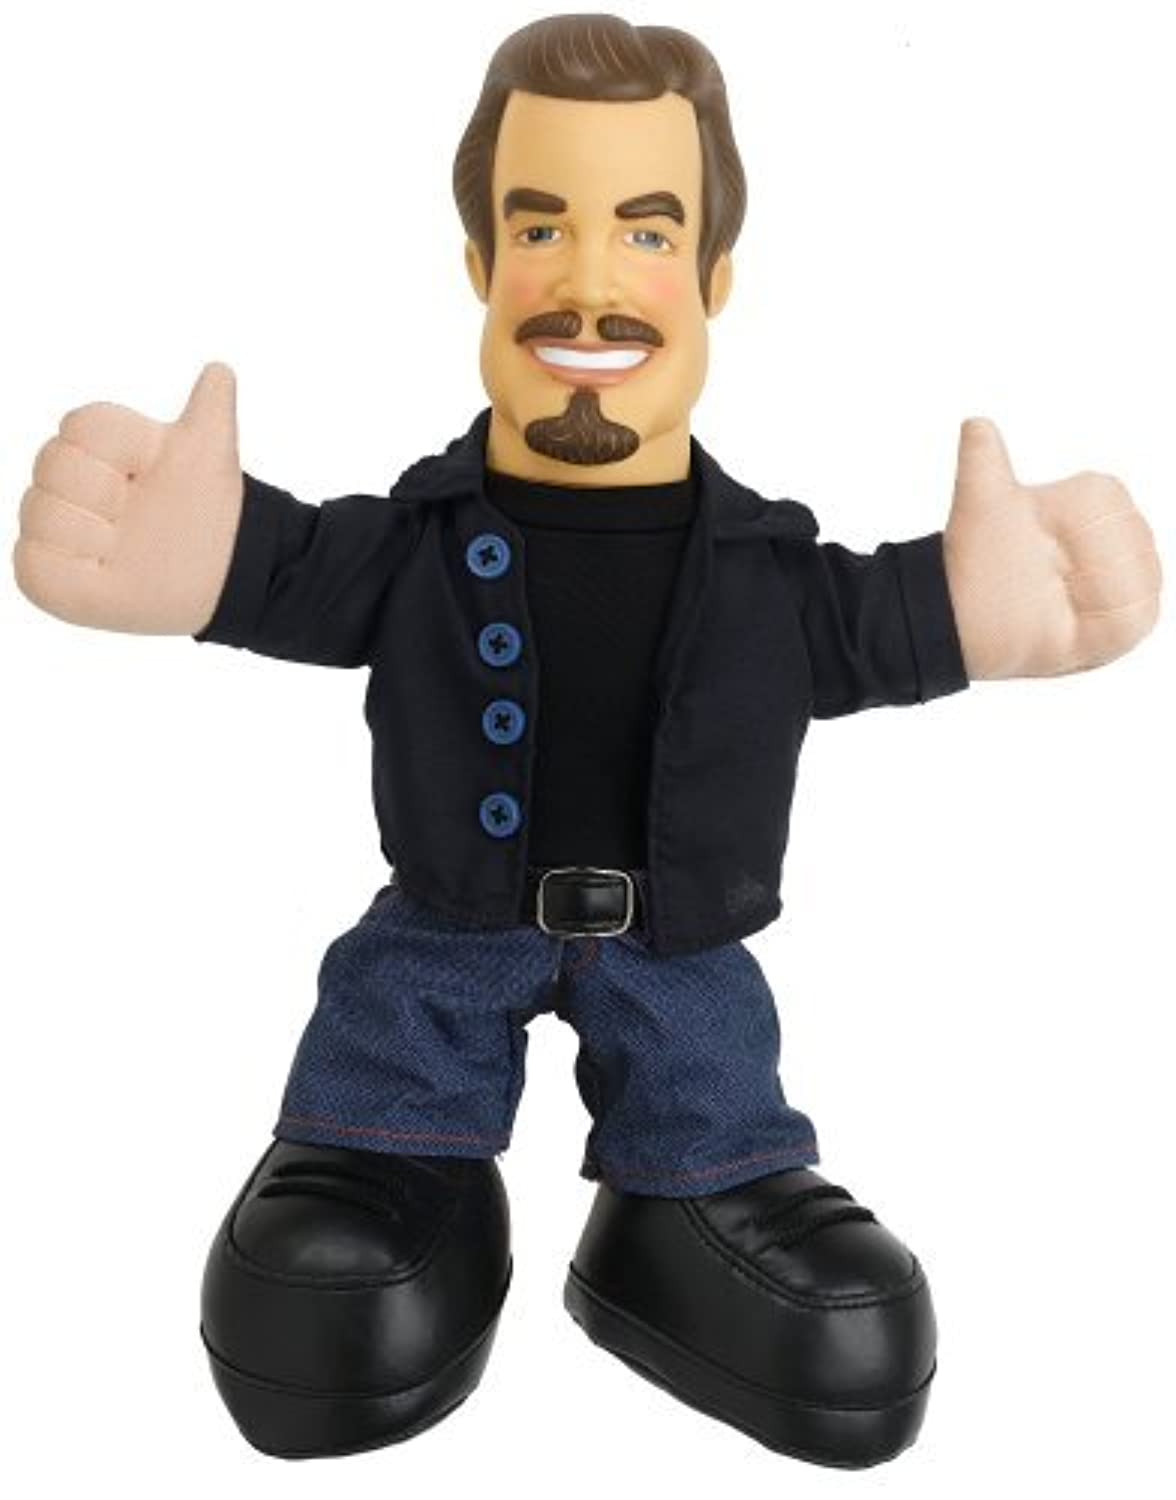 Bill Engvall Blue Collar Comedy Tour Talking 12 Doll [並行輸入品]